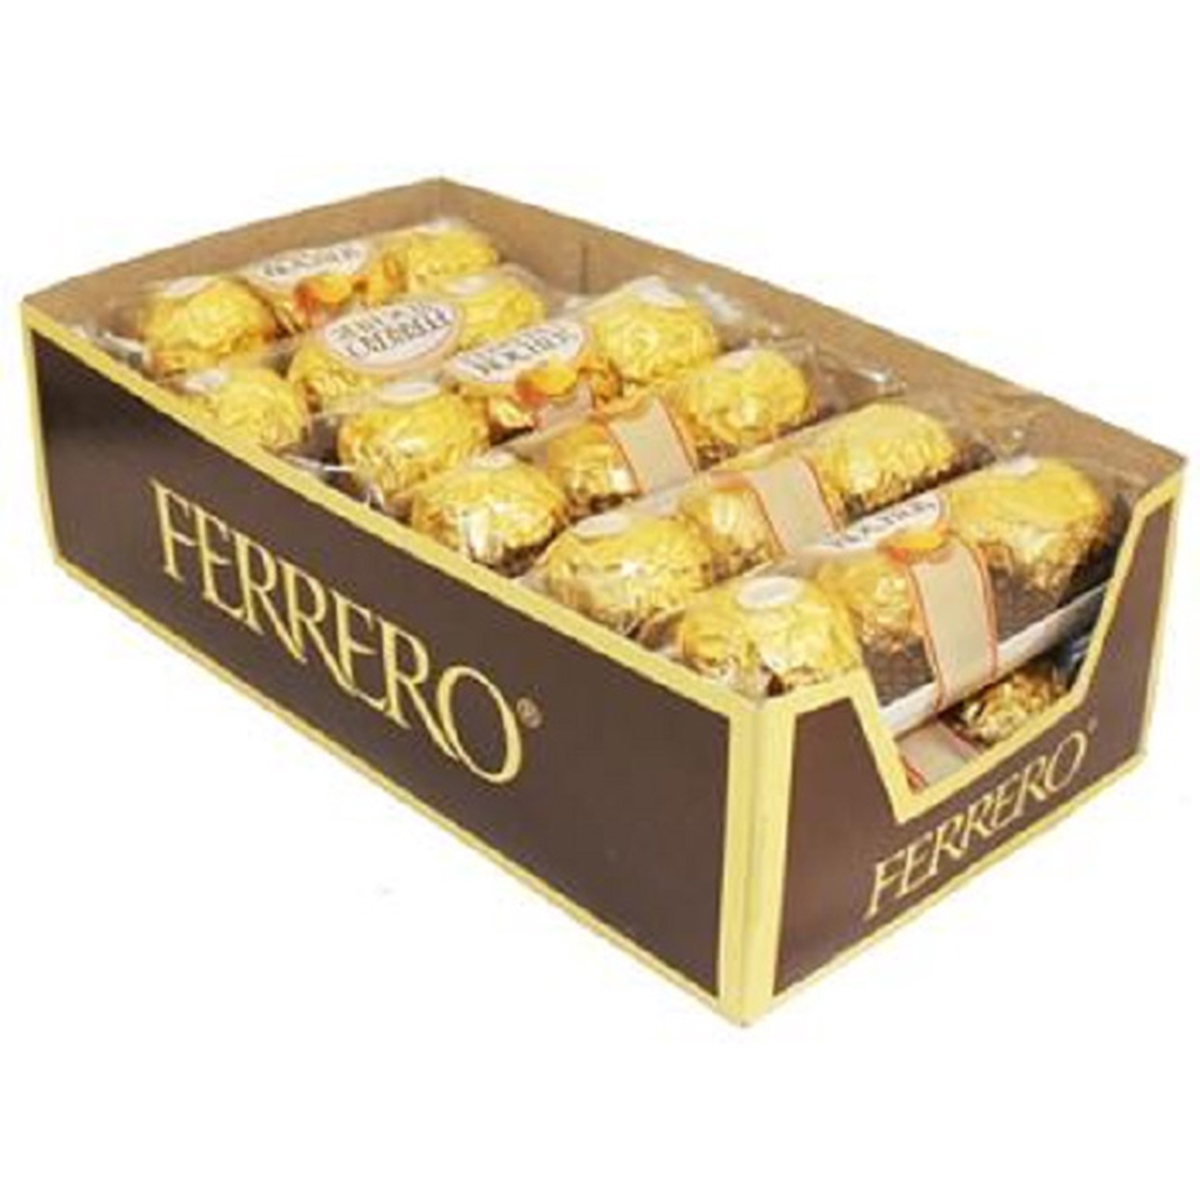 Product Of Ferrero Rocher, King Size Hazelnut Chocolate, Count 12 (3Pk) - Chocolate Candy / Grab Varieties & Flavors